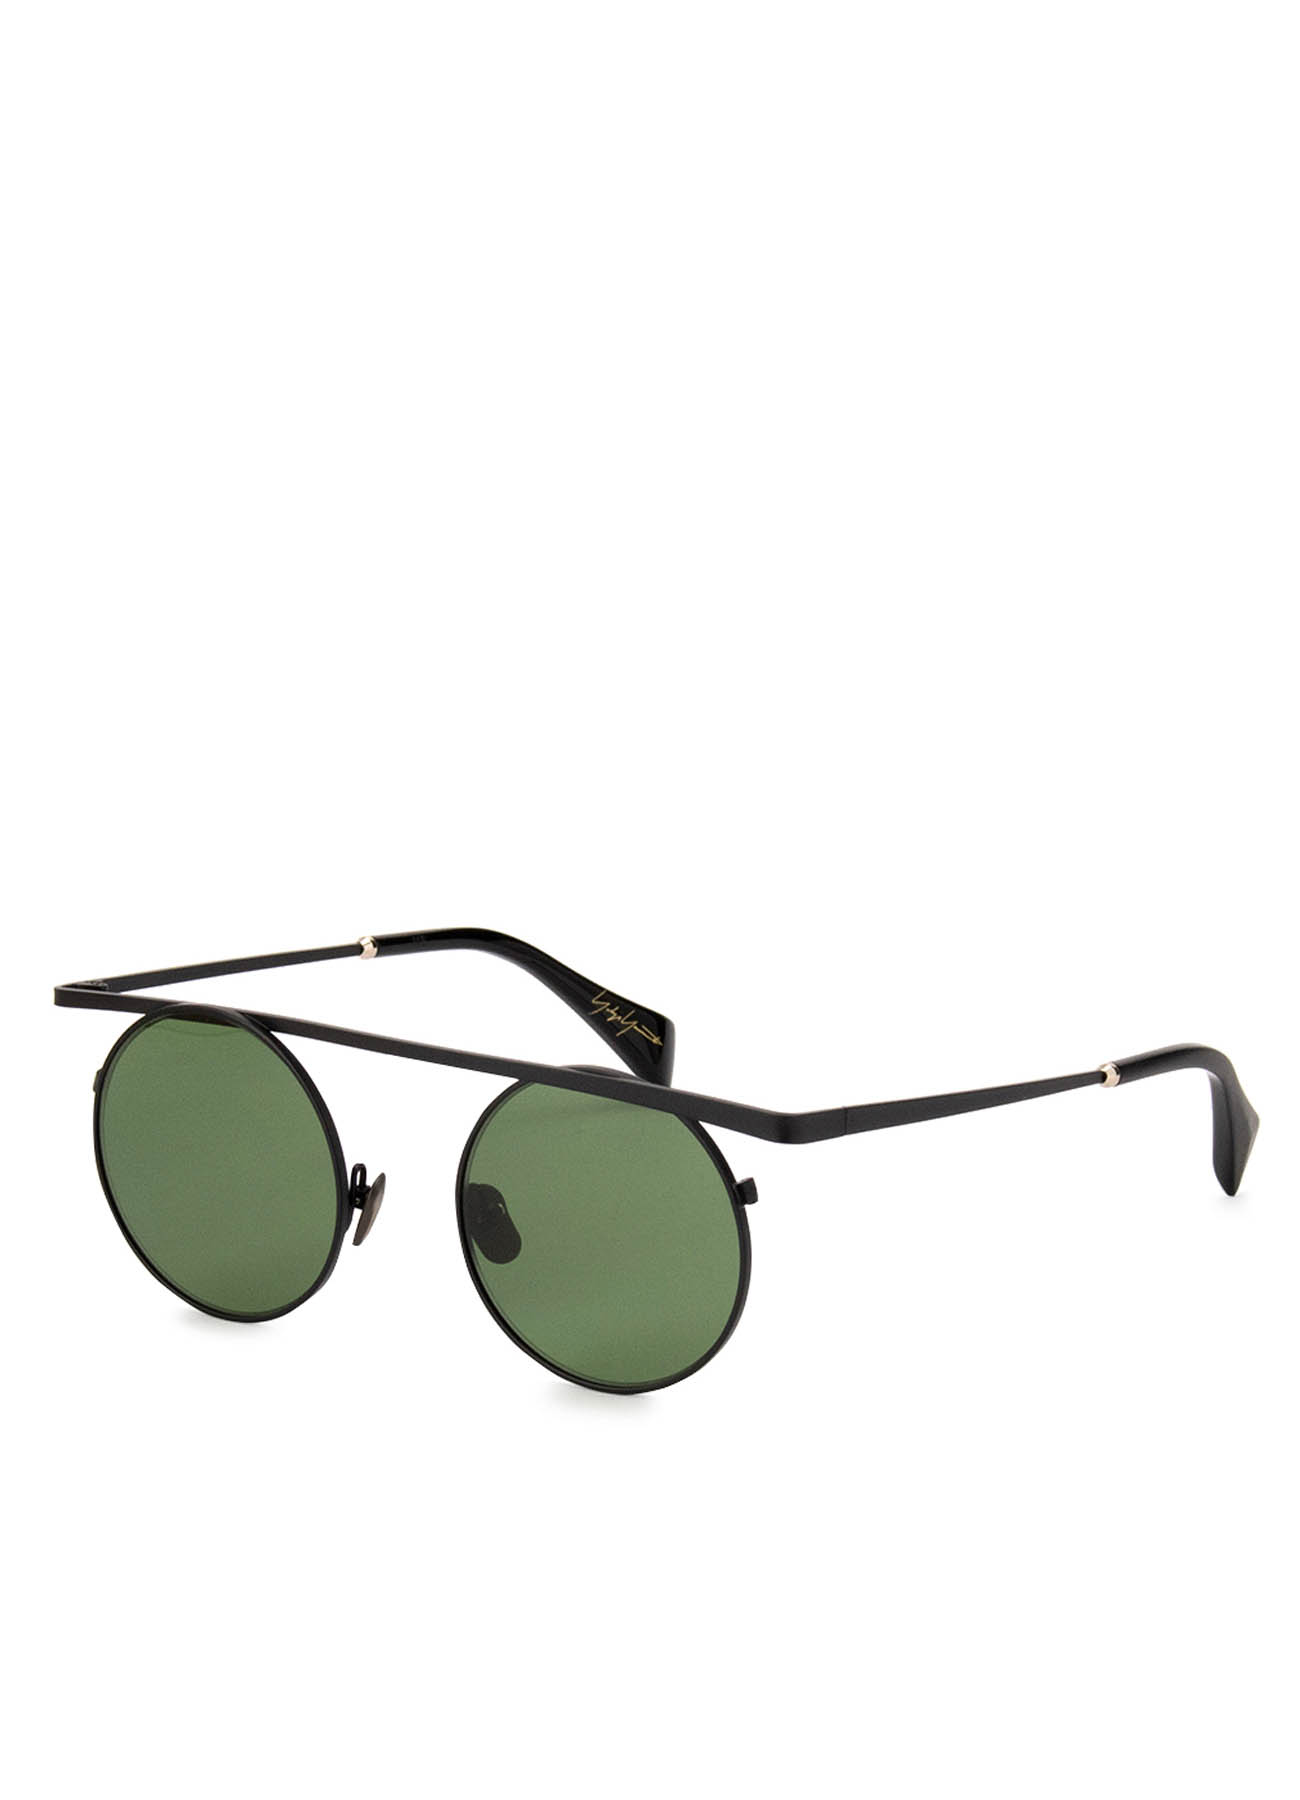 Stainless Steel YY7038 SUNGLASS